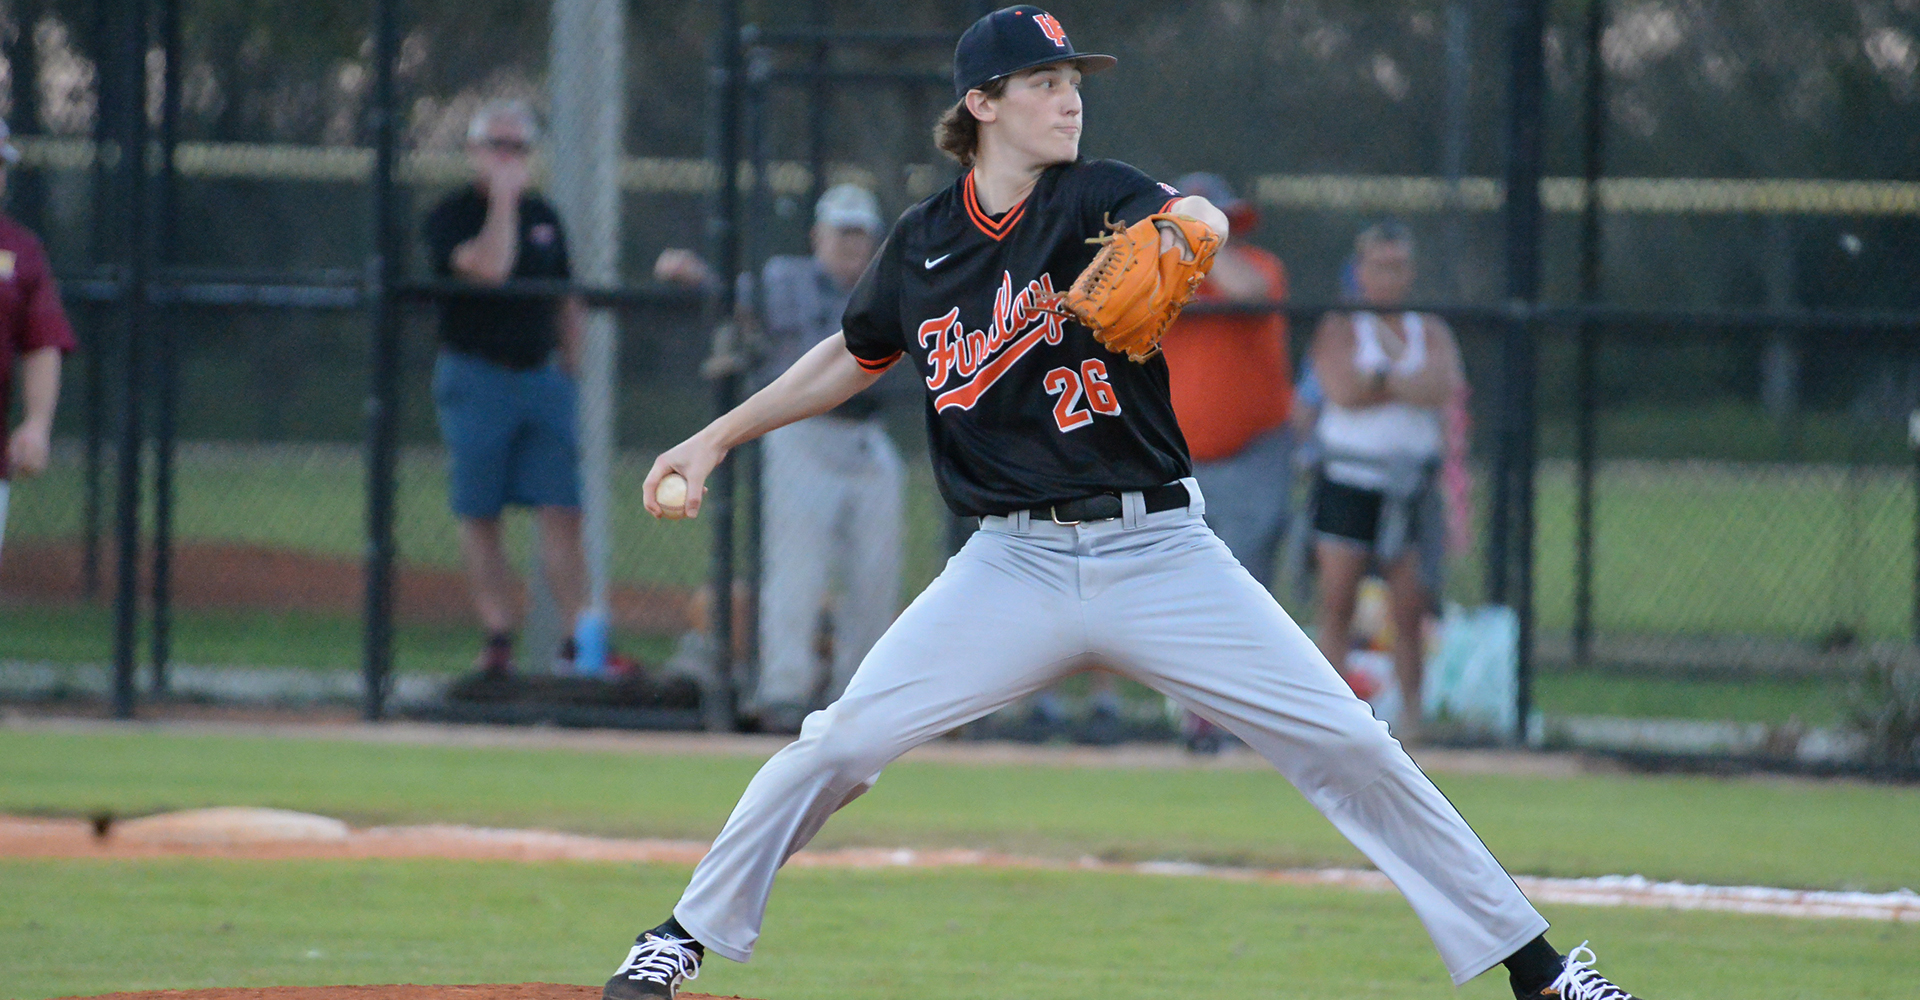 Oilers Defeat Railsplitters Behind Four-Inning Relief Effort by Bame